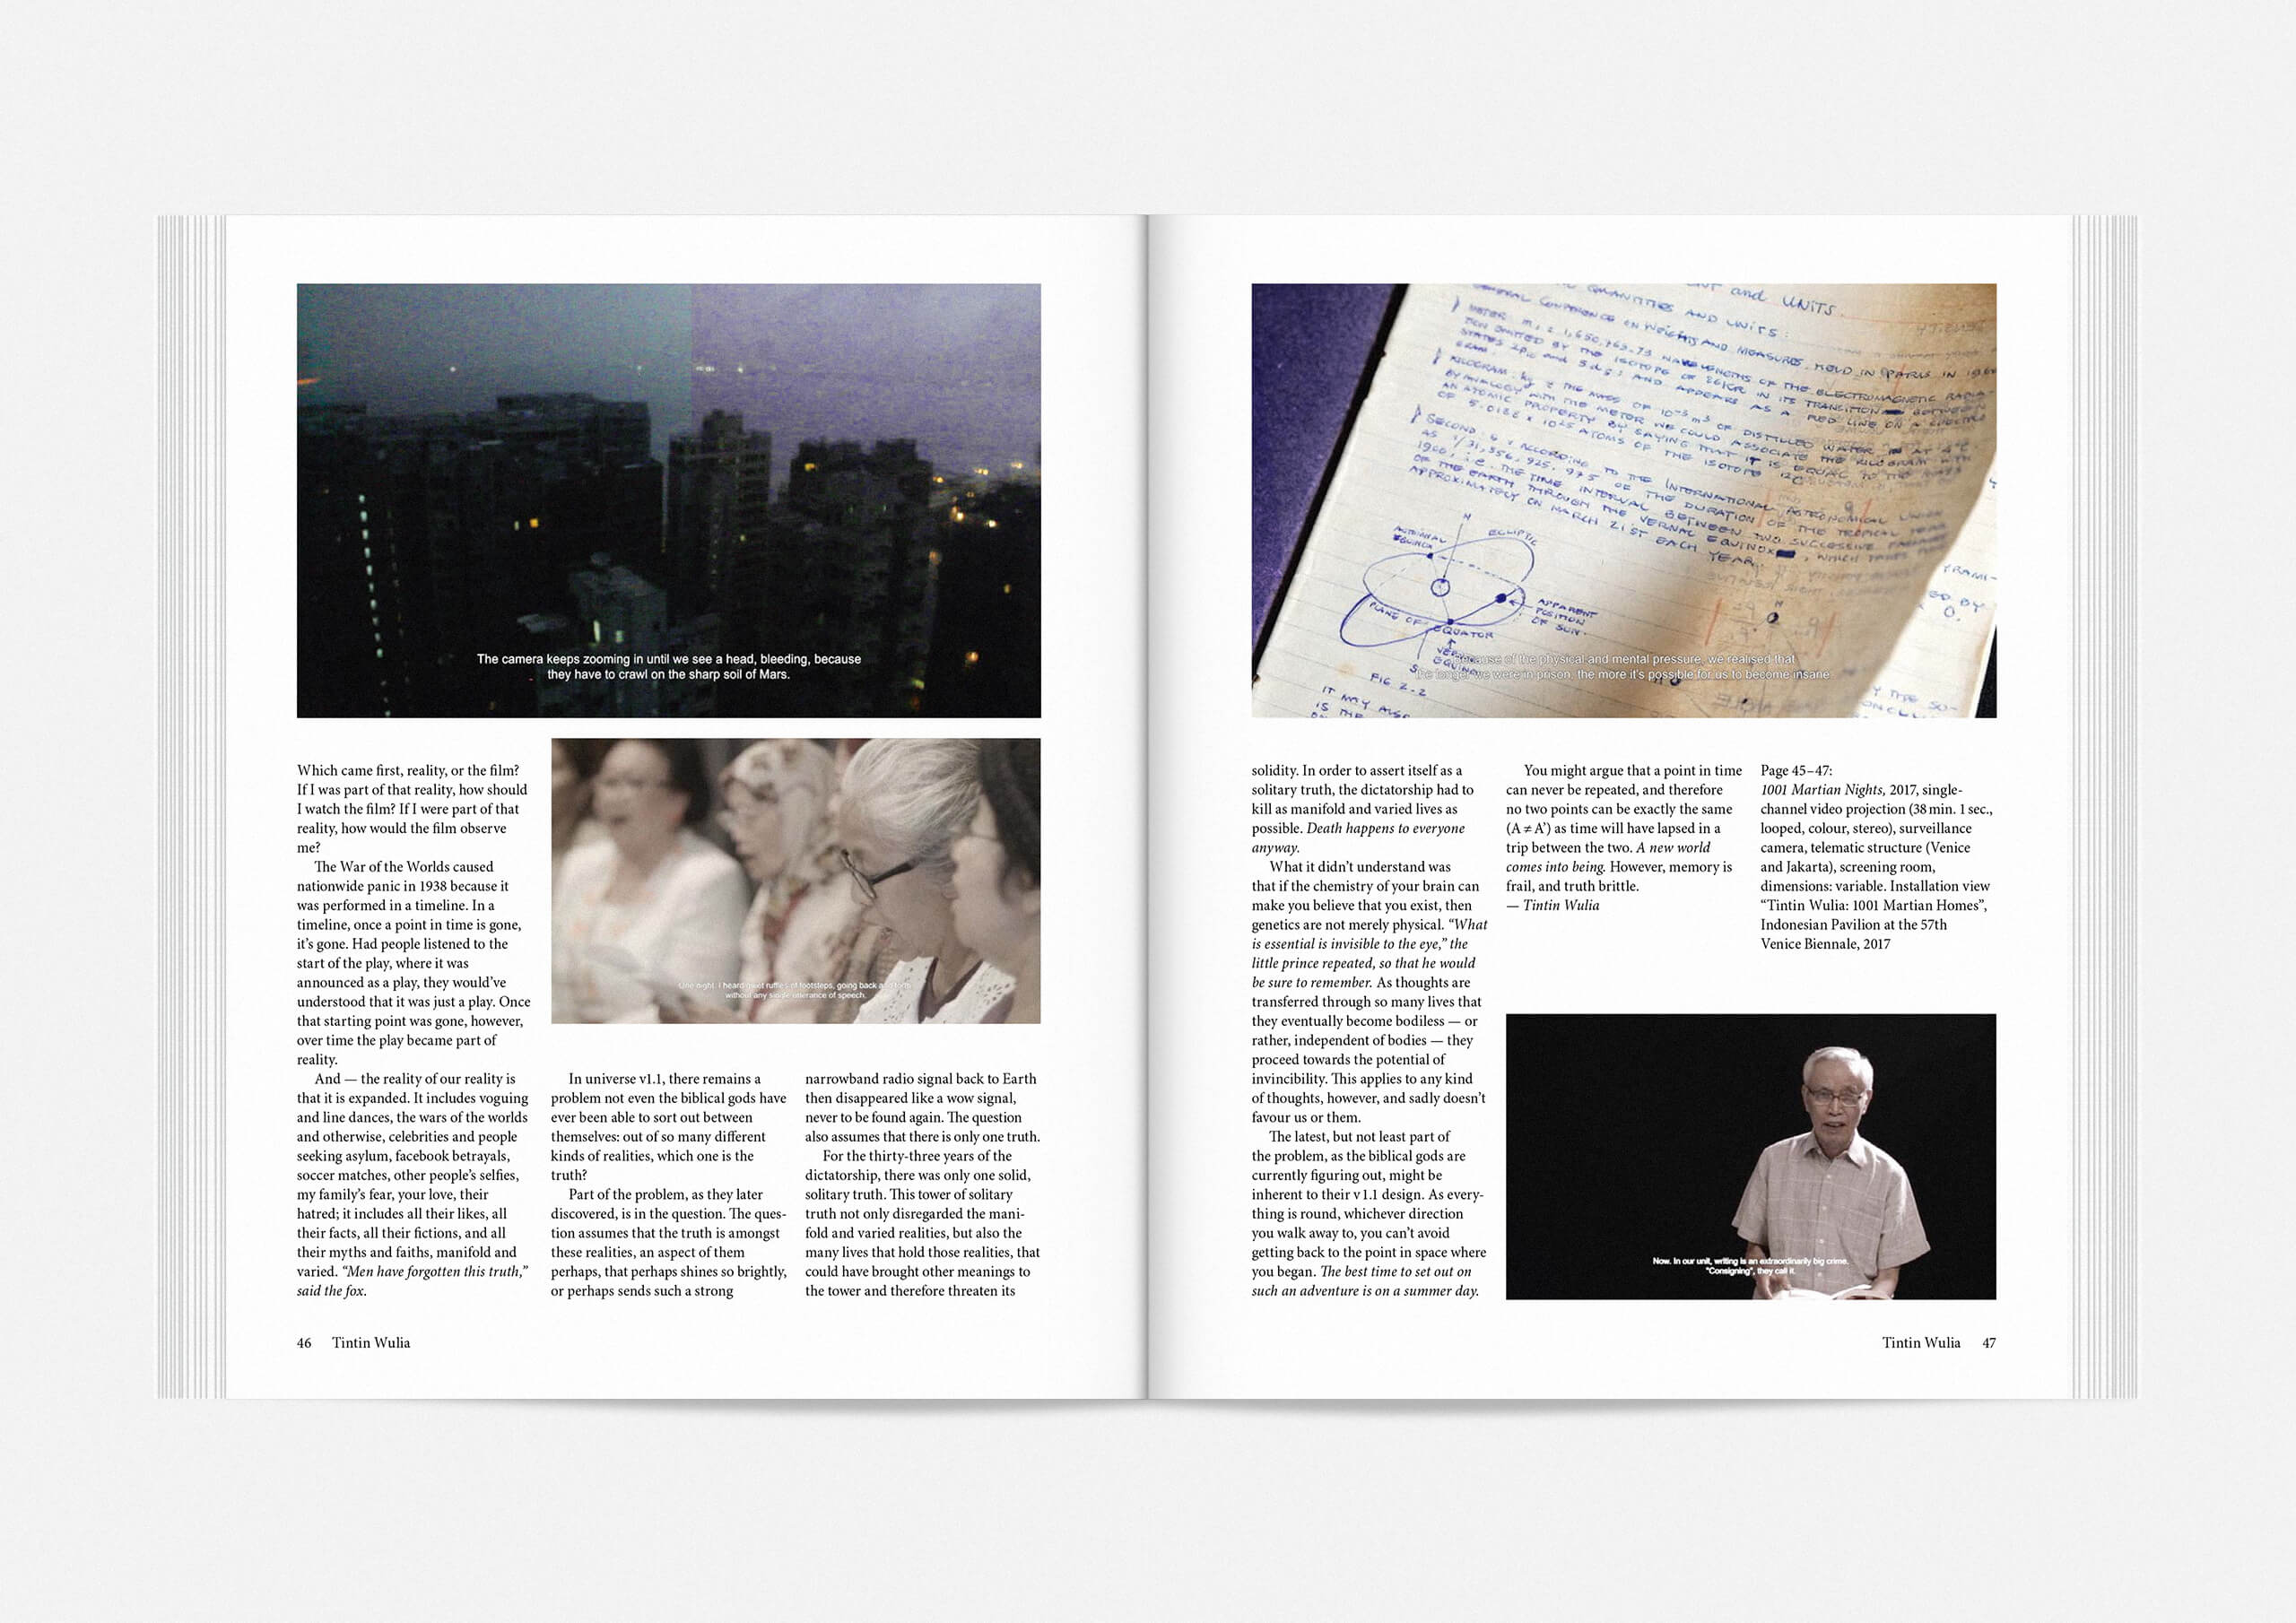 http://neuegestaltung.de/media/pages/clients/protocollum-issue-no-05/ddff57e262-1597415139/protocollum-5-page-4647-ng.jpg